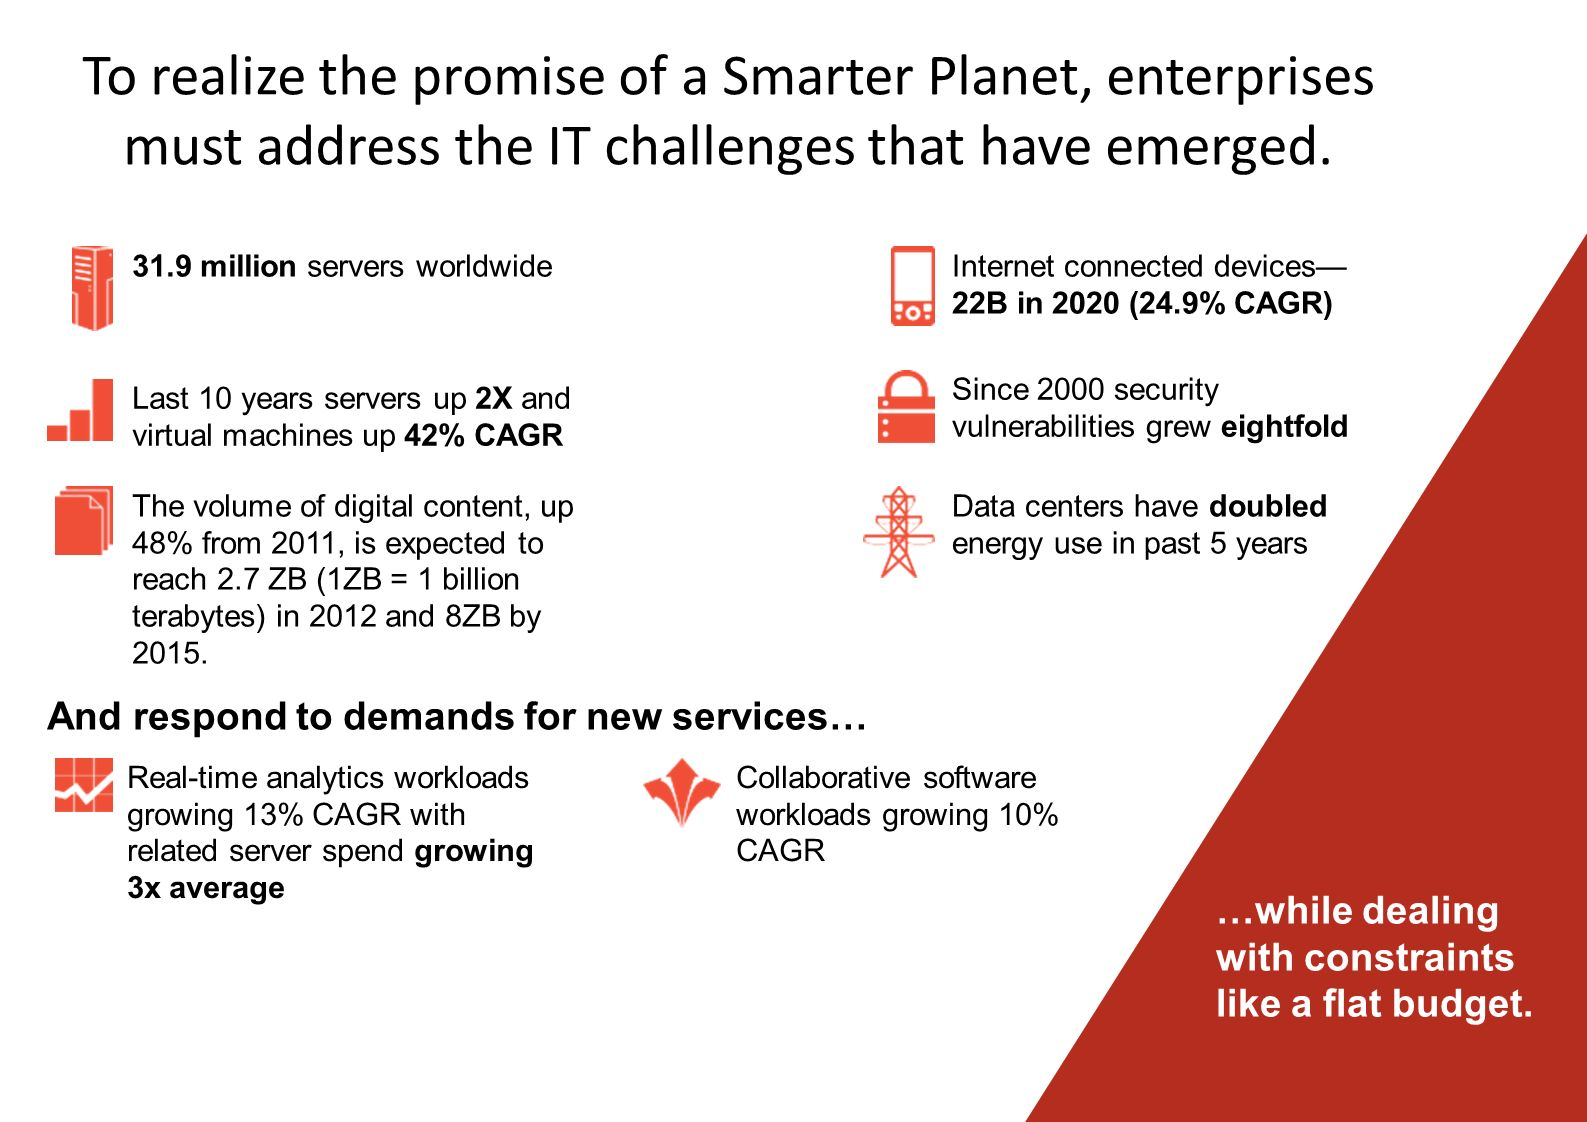 To realize the promise of a Smarter Planet, enterprises must address the IT challenges that have emerged.